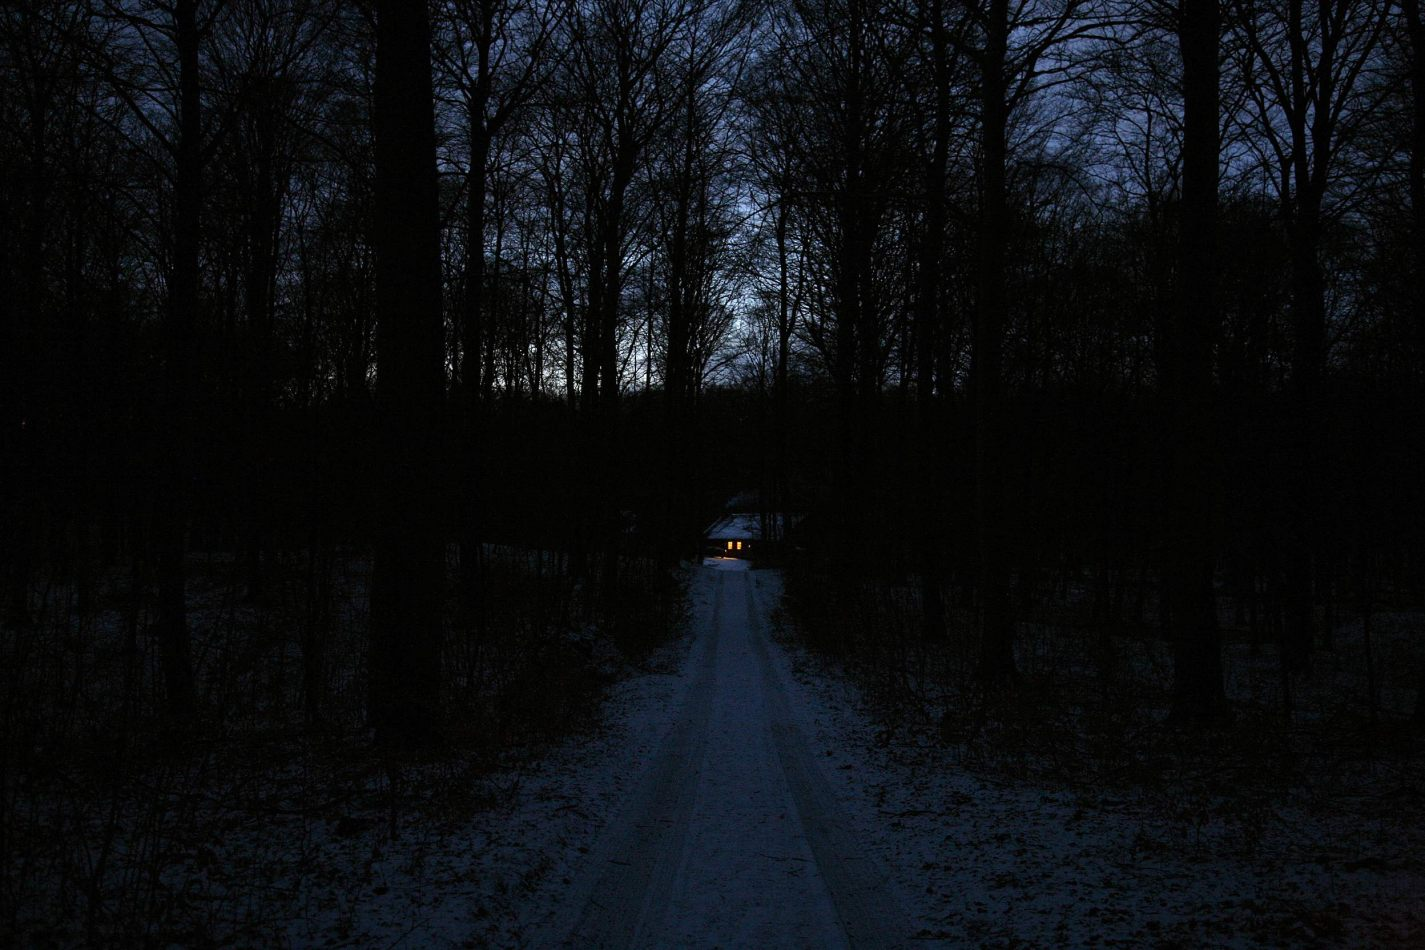 Anthony Ellis Photography: Silent Afternoons - Lights in a Dark Wood